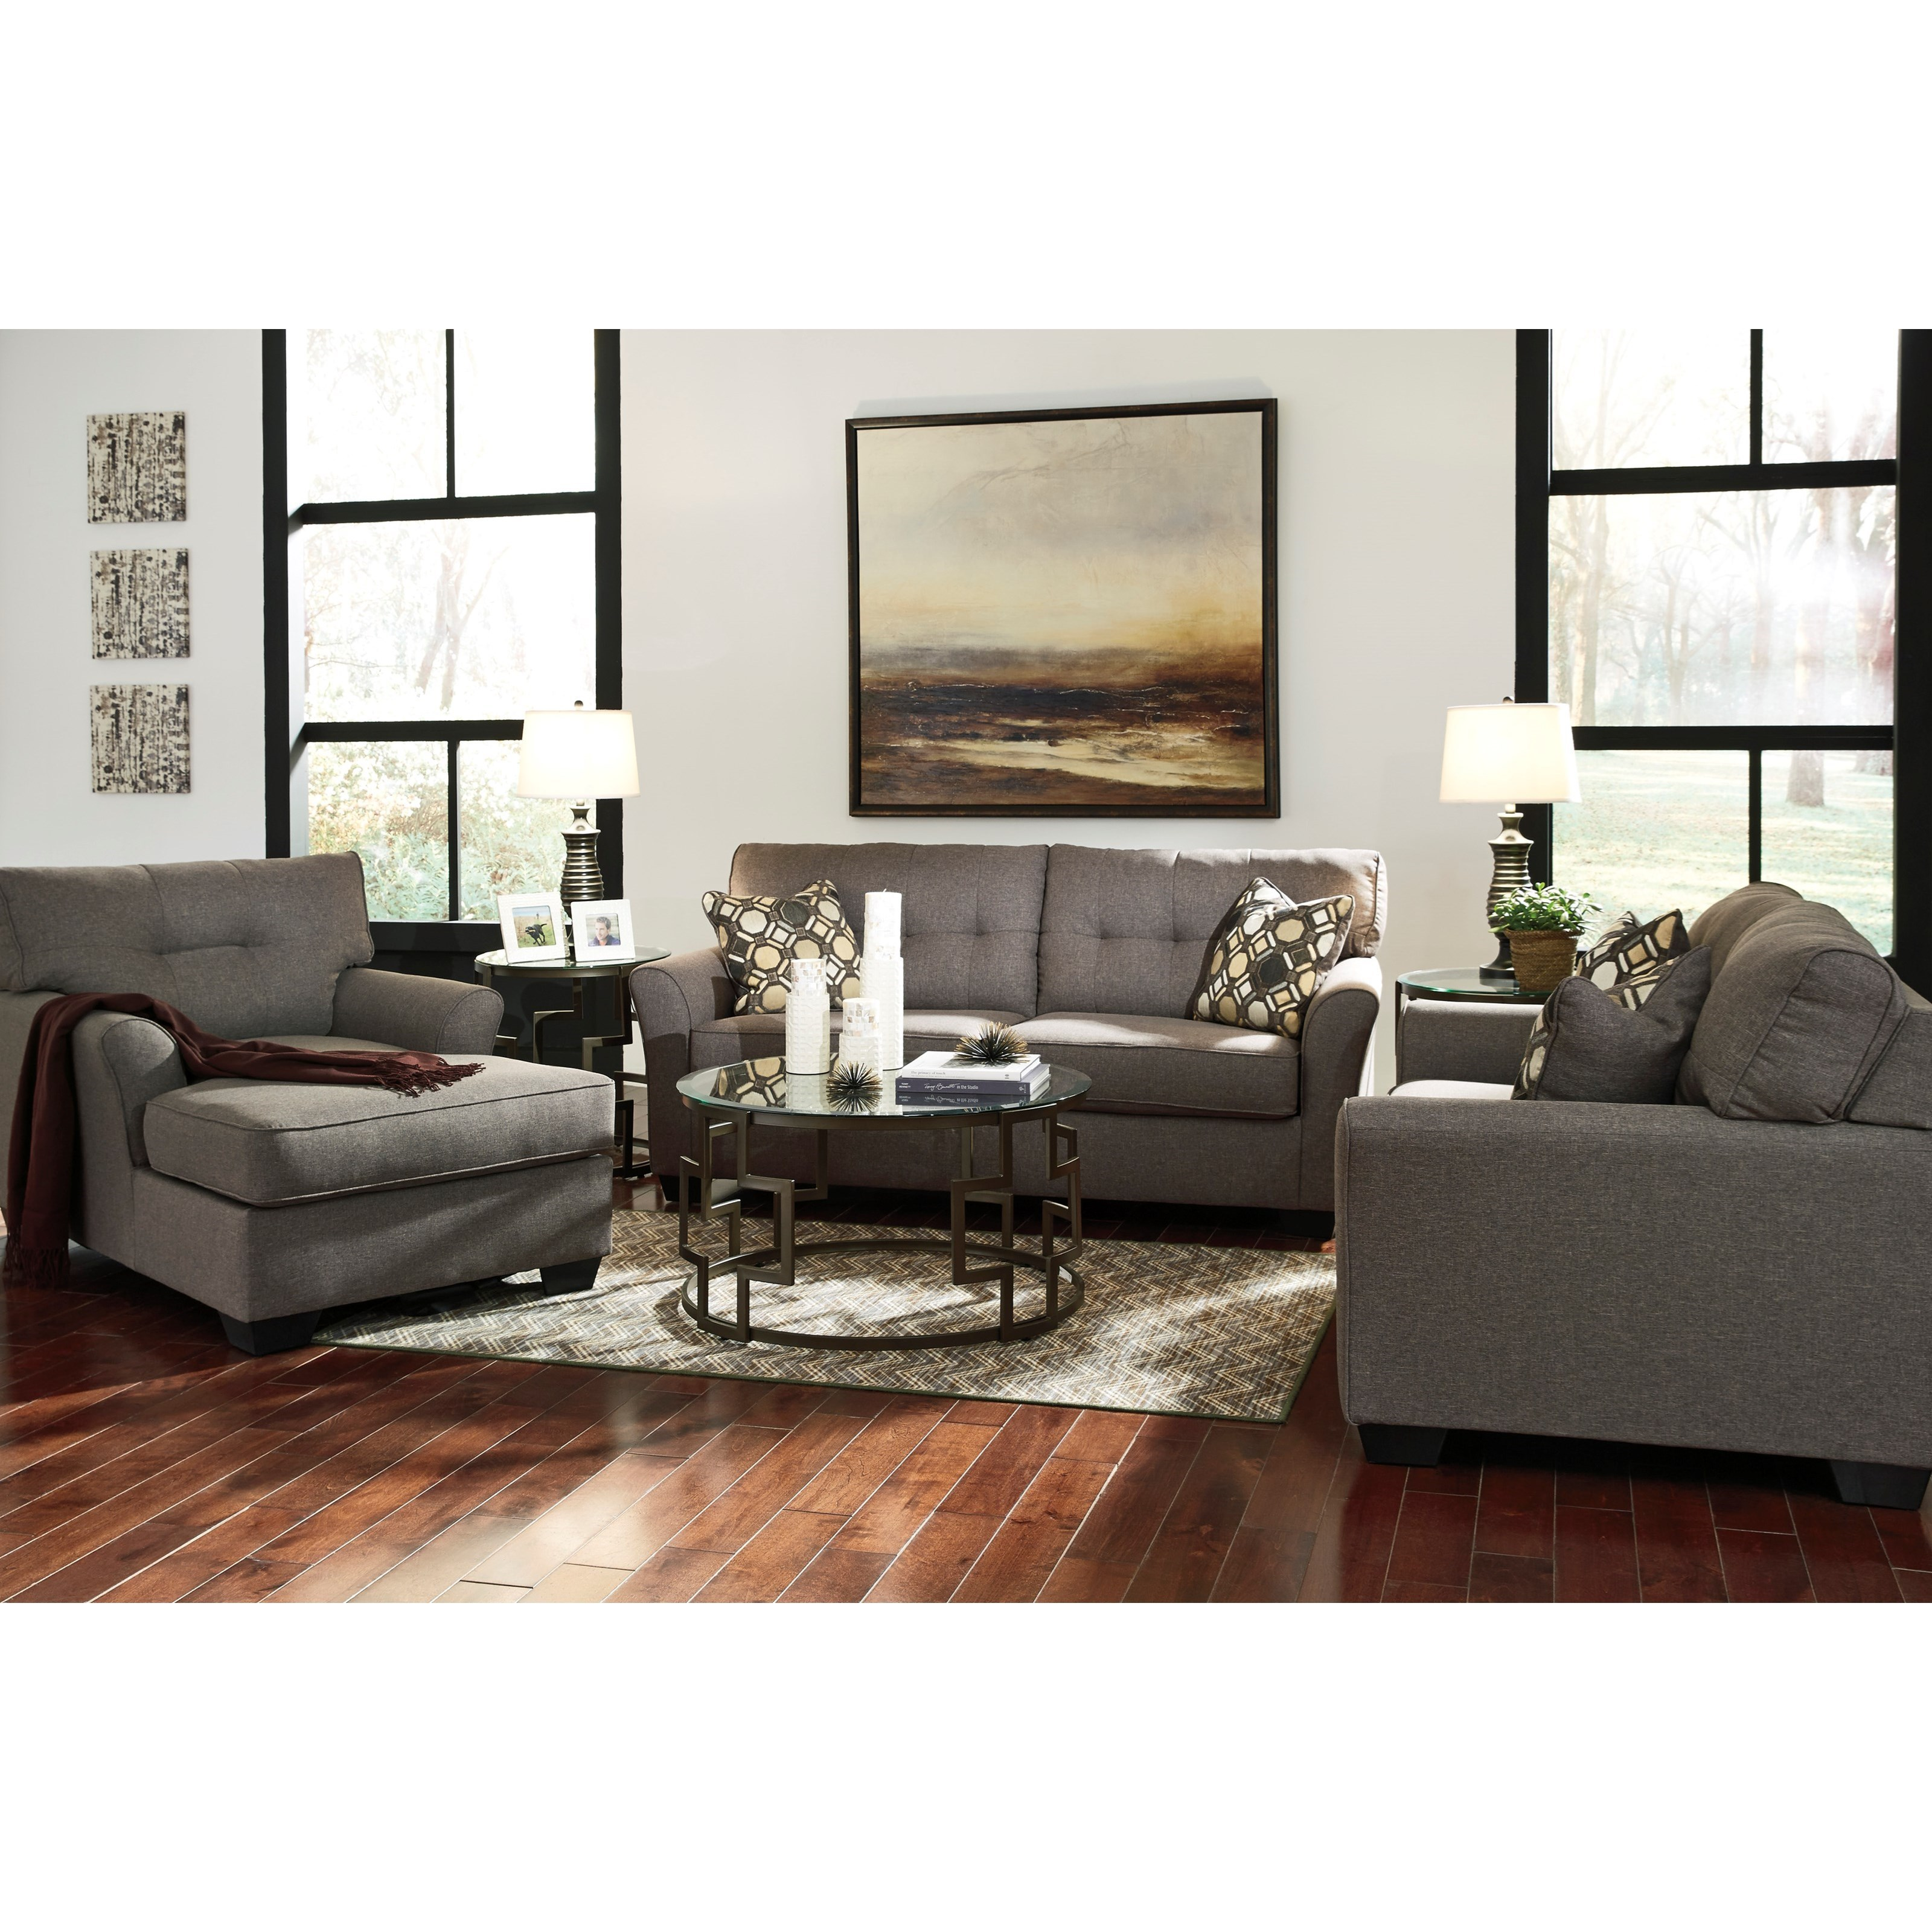 Tibbee Stationary Living Room Group by Signature Design by Ashley at Darvin Furniture